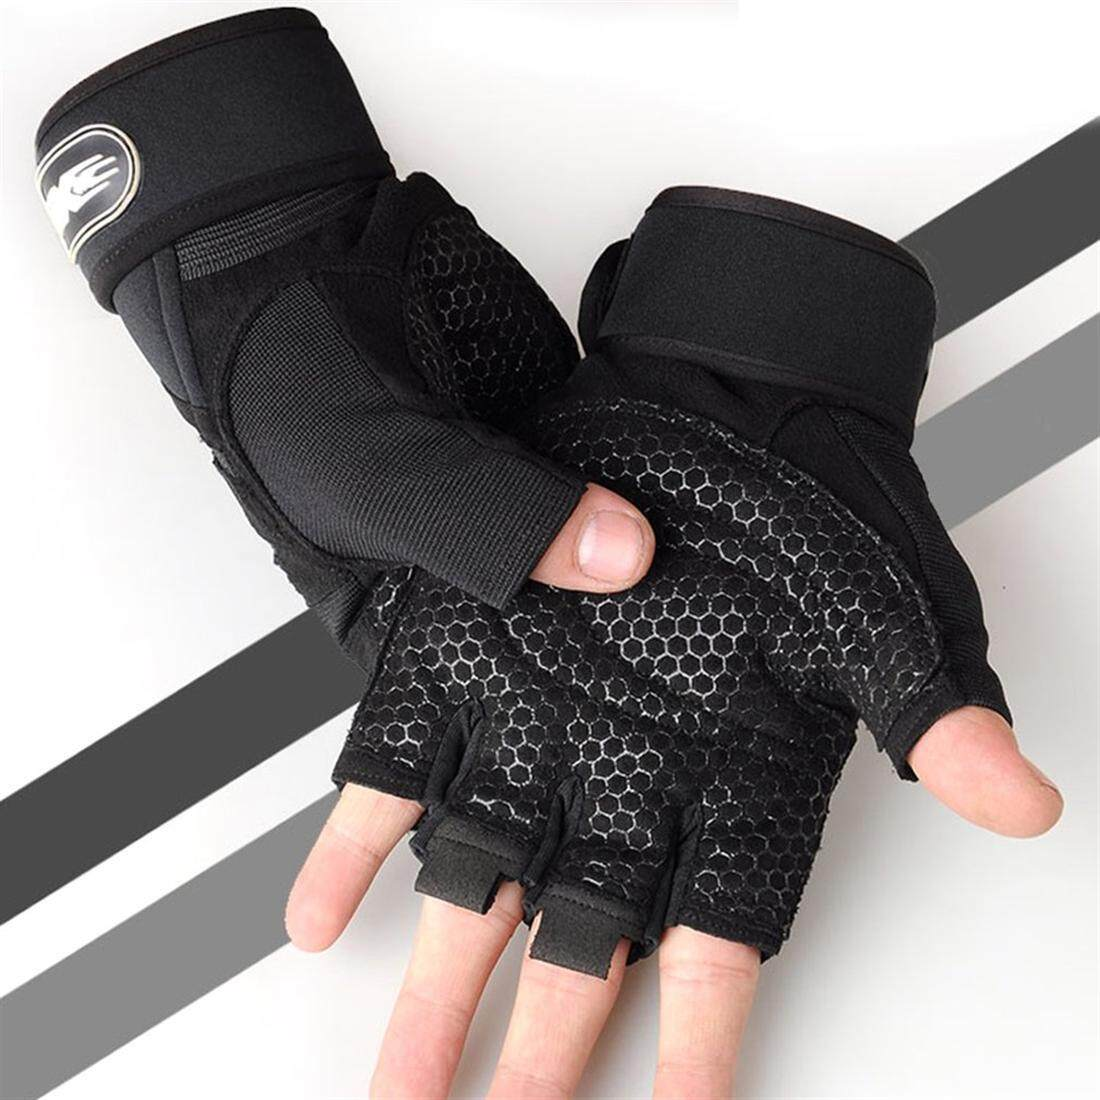 Half-Finger Cycling Gloves Weightlifting Protective Gloves With Wrist Guards By Dalingshop.